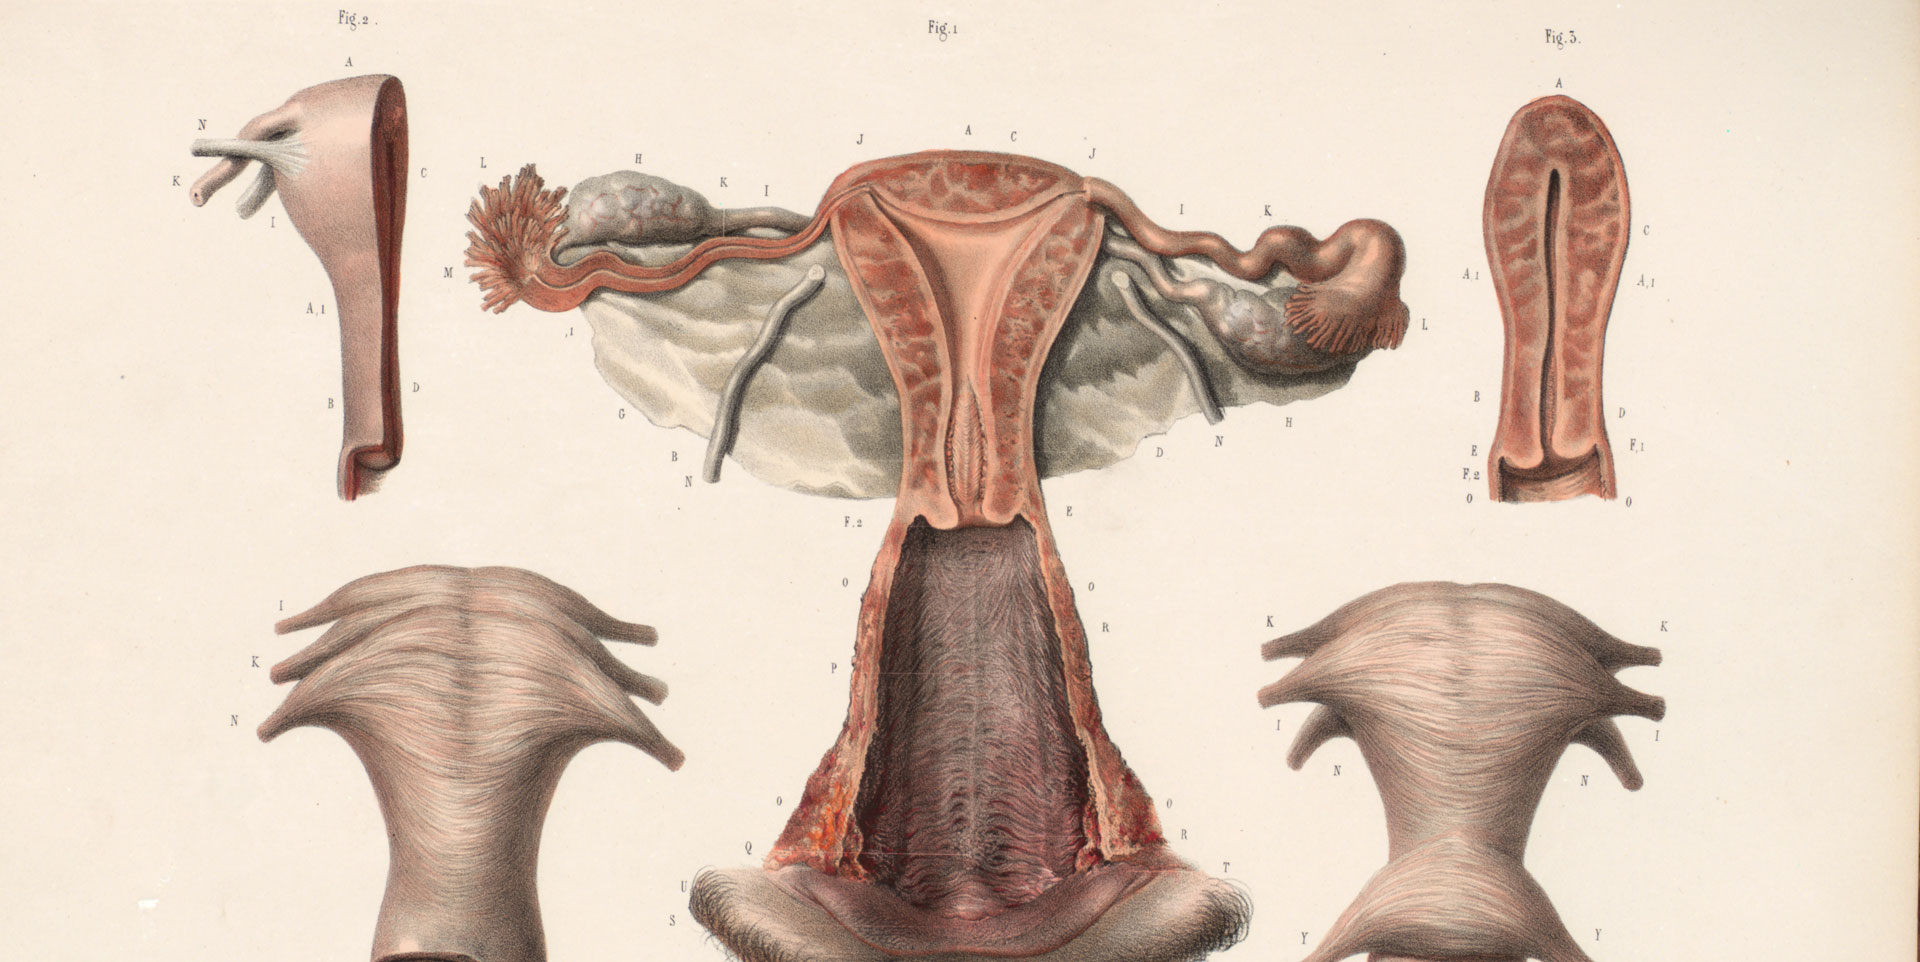 Dissection of female genitalia.